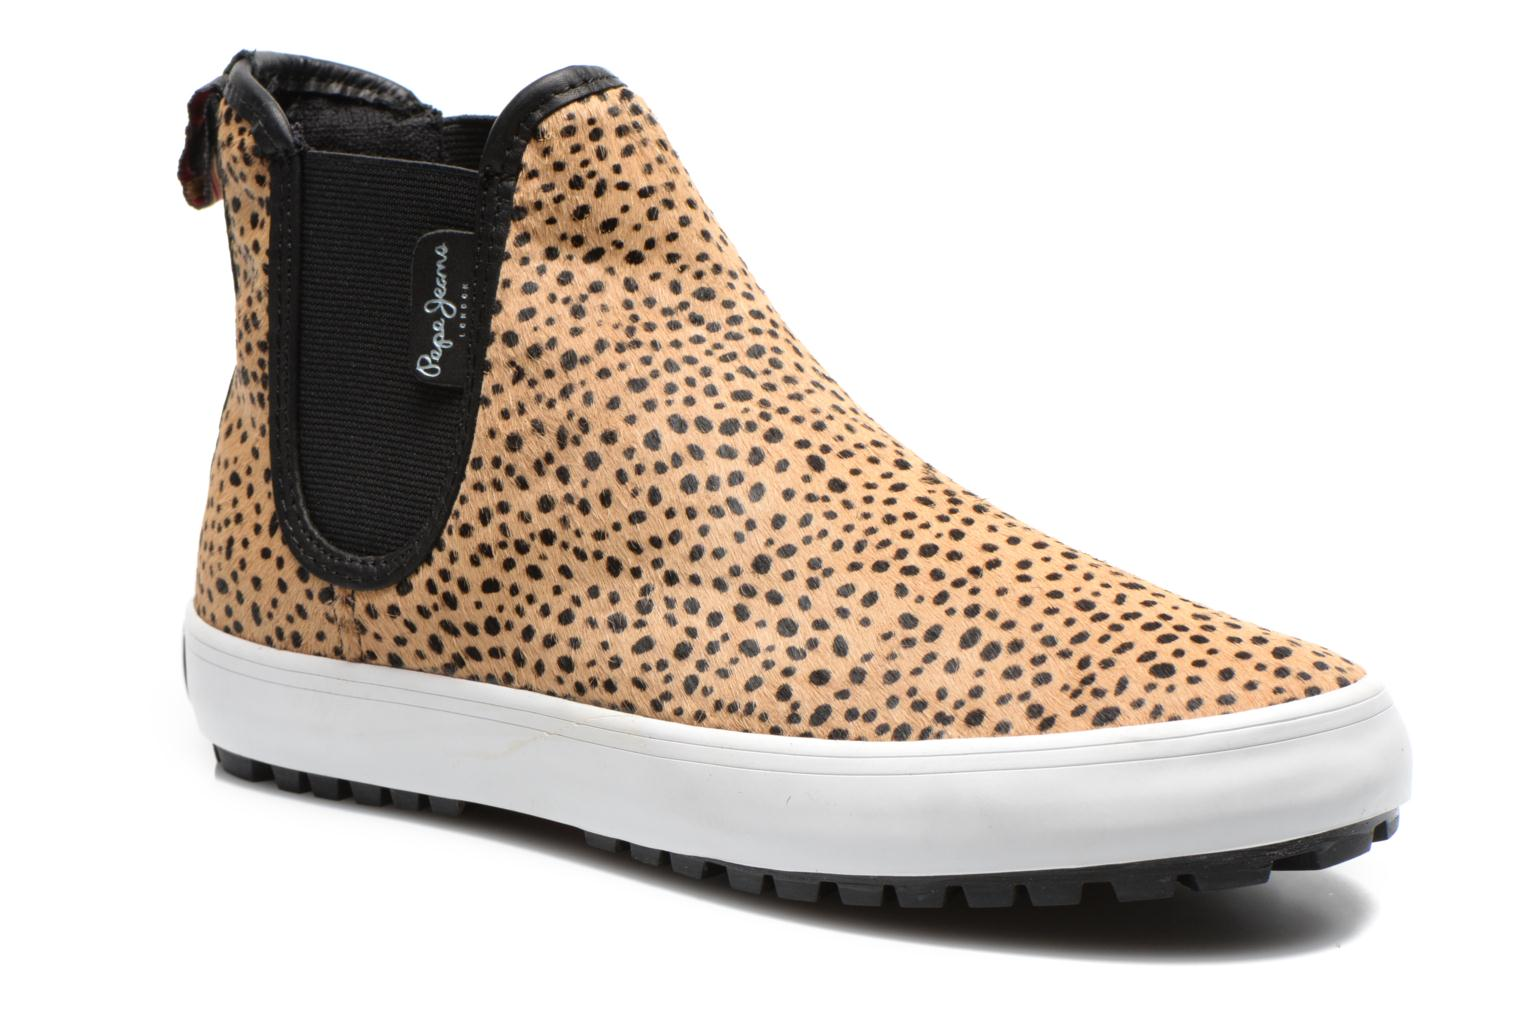 Sneakers Ripley by Pepe jeans